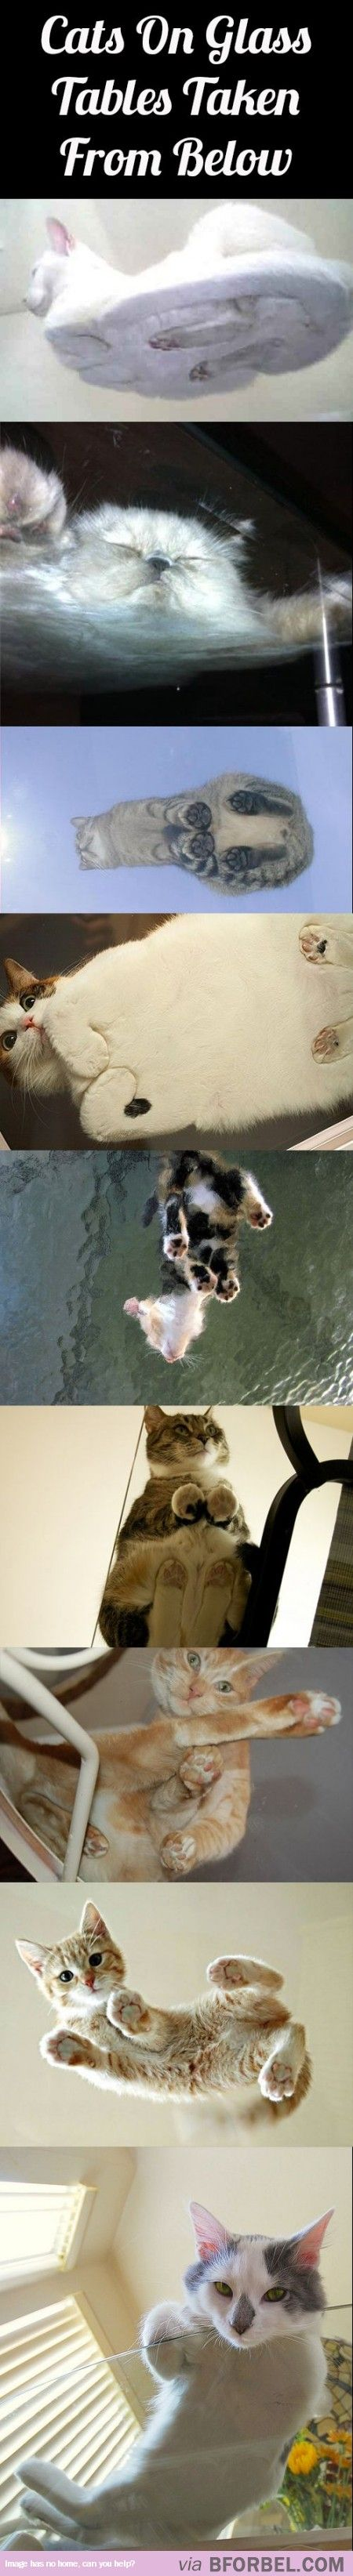 10 Photos Of Cats On Glass Tables Taken From The Bottom…